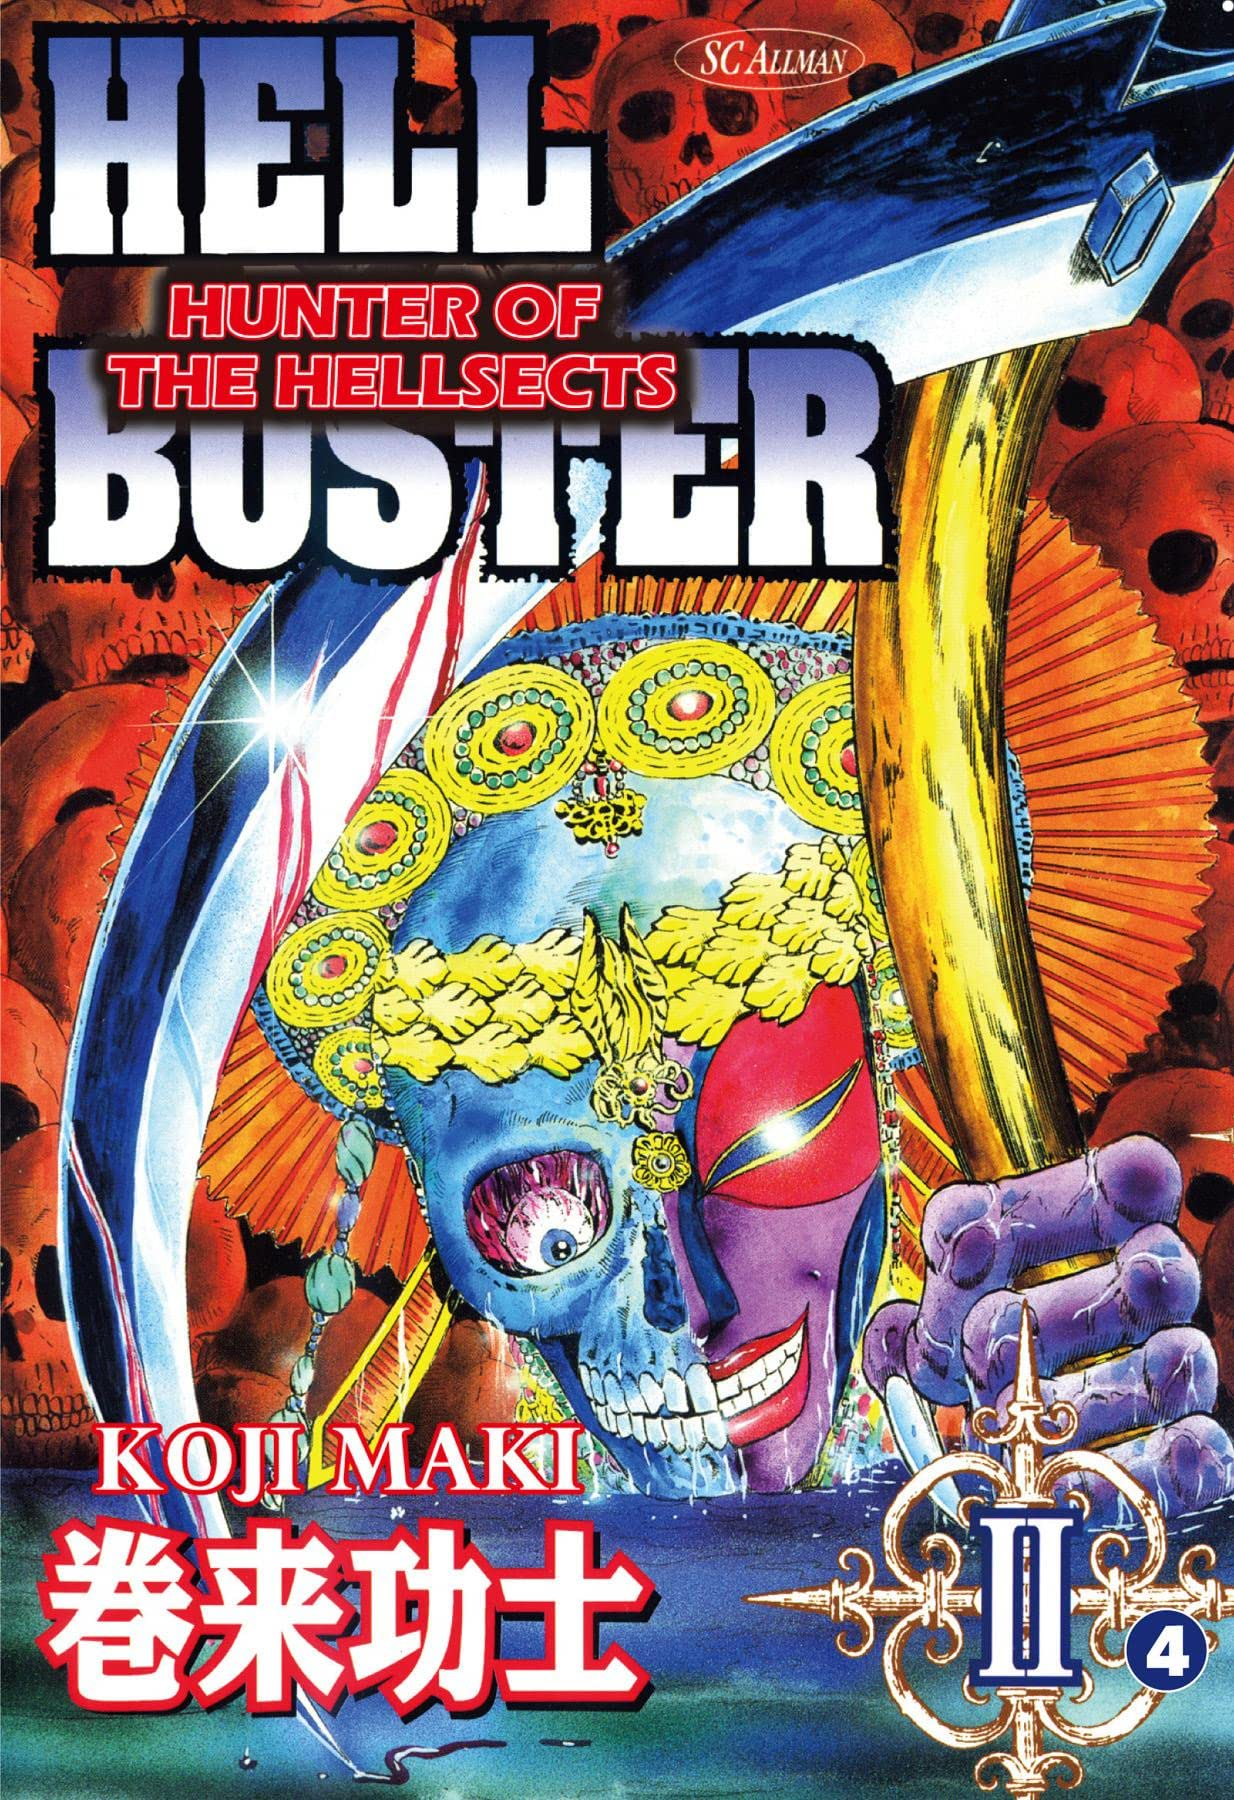 HELL BUSTER HUNTER OF THE HELLSECTS #11